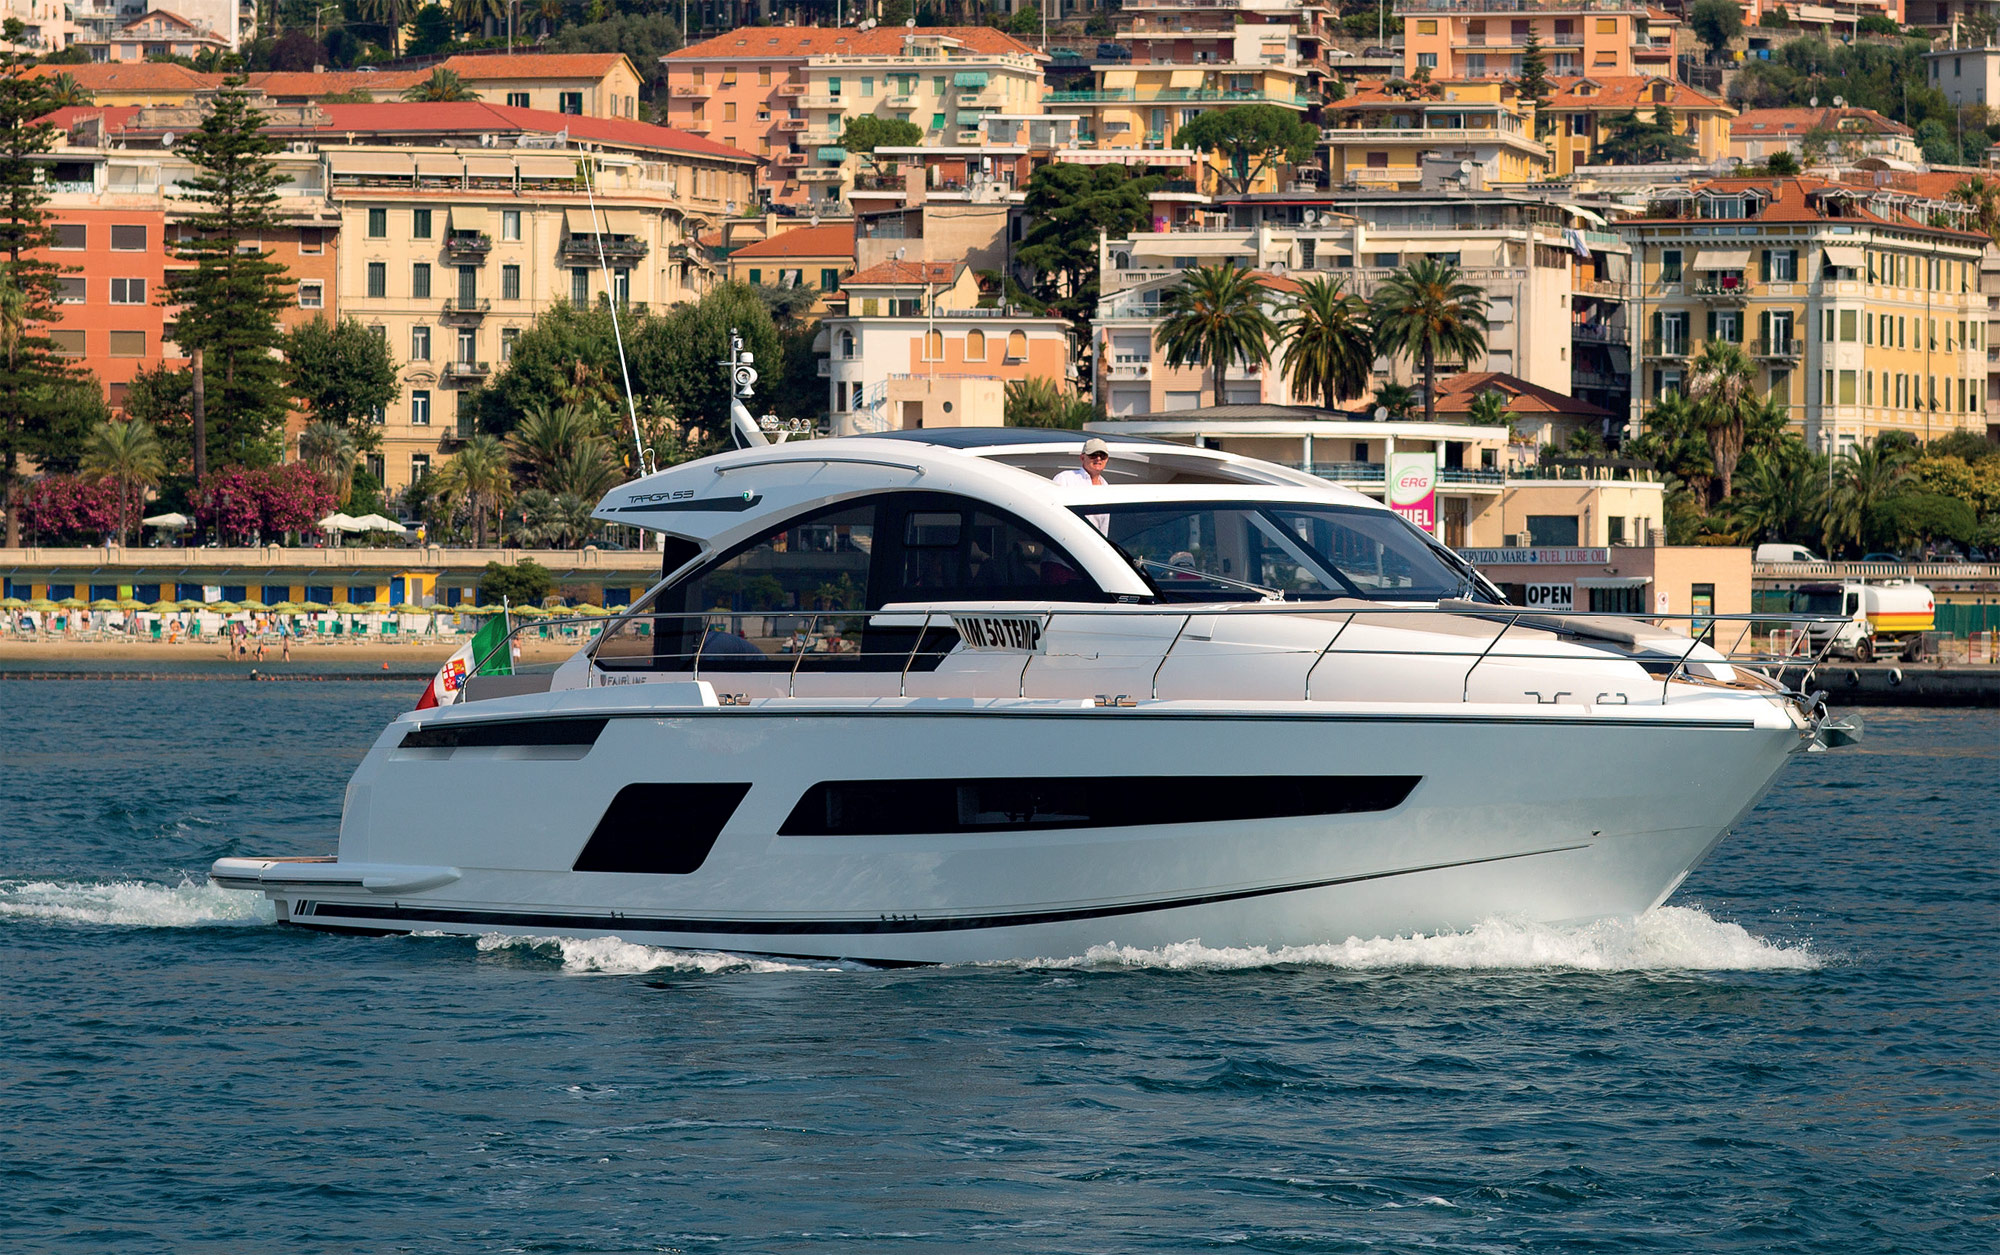 Zoë Bing, somewhere off the Italian Riviera, samples la dolce vita on a Targa 53 GT